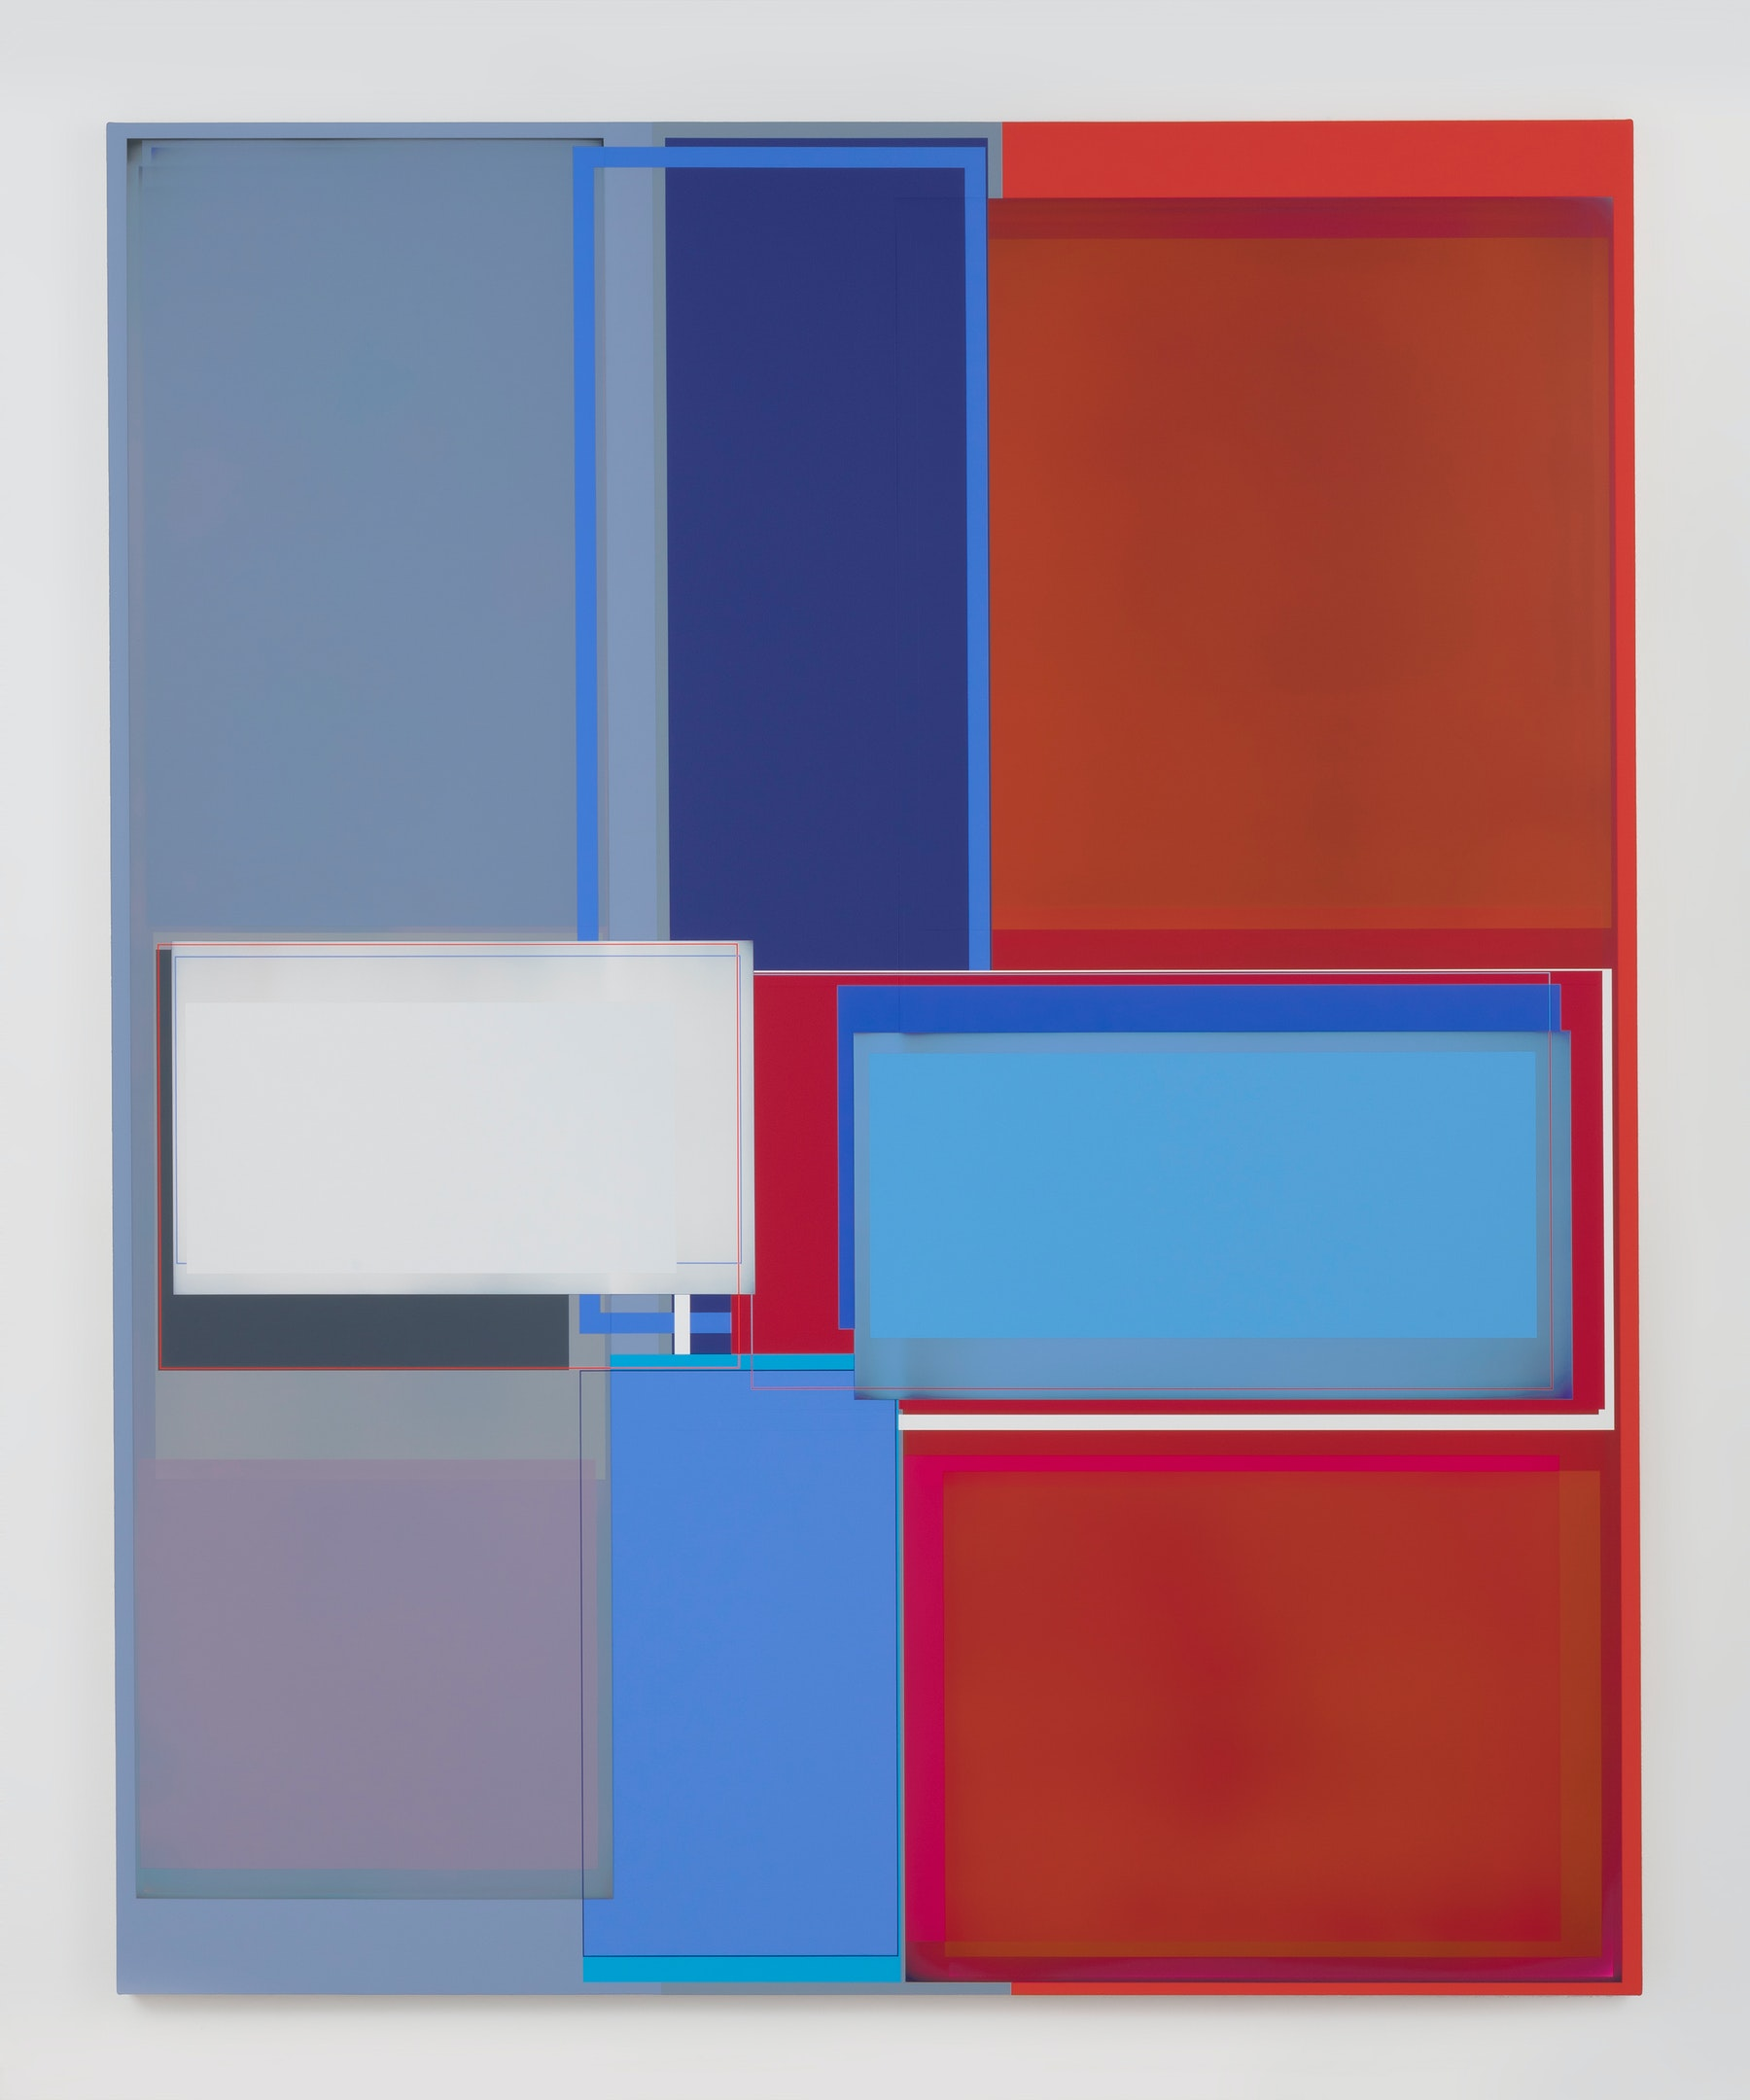 """Patrick Wilson """"Pressure Change,"""" 2020 Acrylic on canvas 86"""" x 70"""" [HxW] (218.44 x 177.8 cm) Inventory #WIL581 Courtesy of the artist and Vielmetter Los Angeles Photo credit: Robert Wedemeyer"""